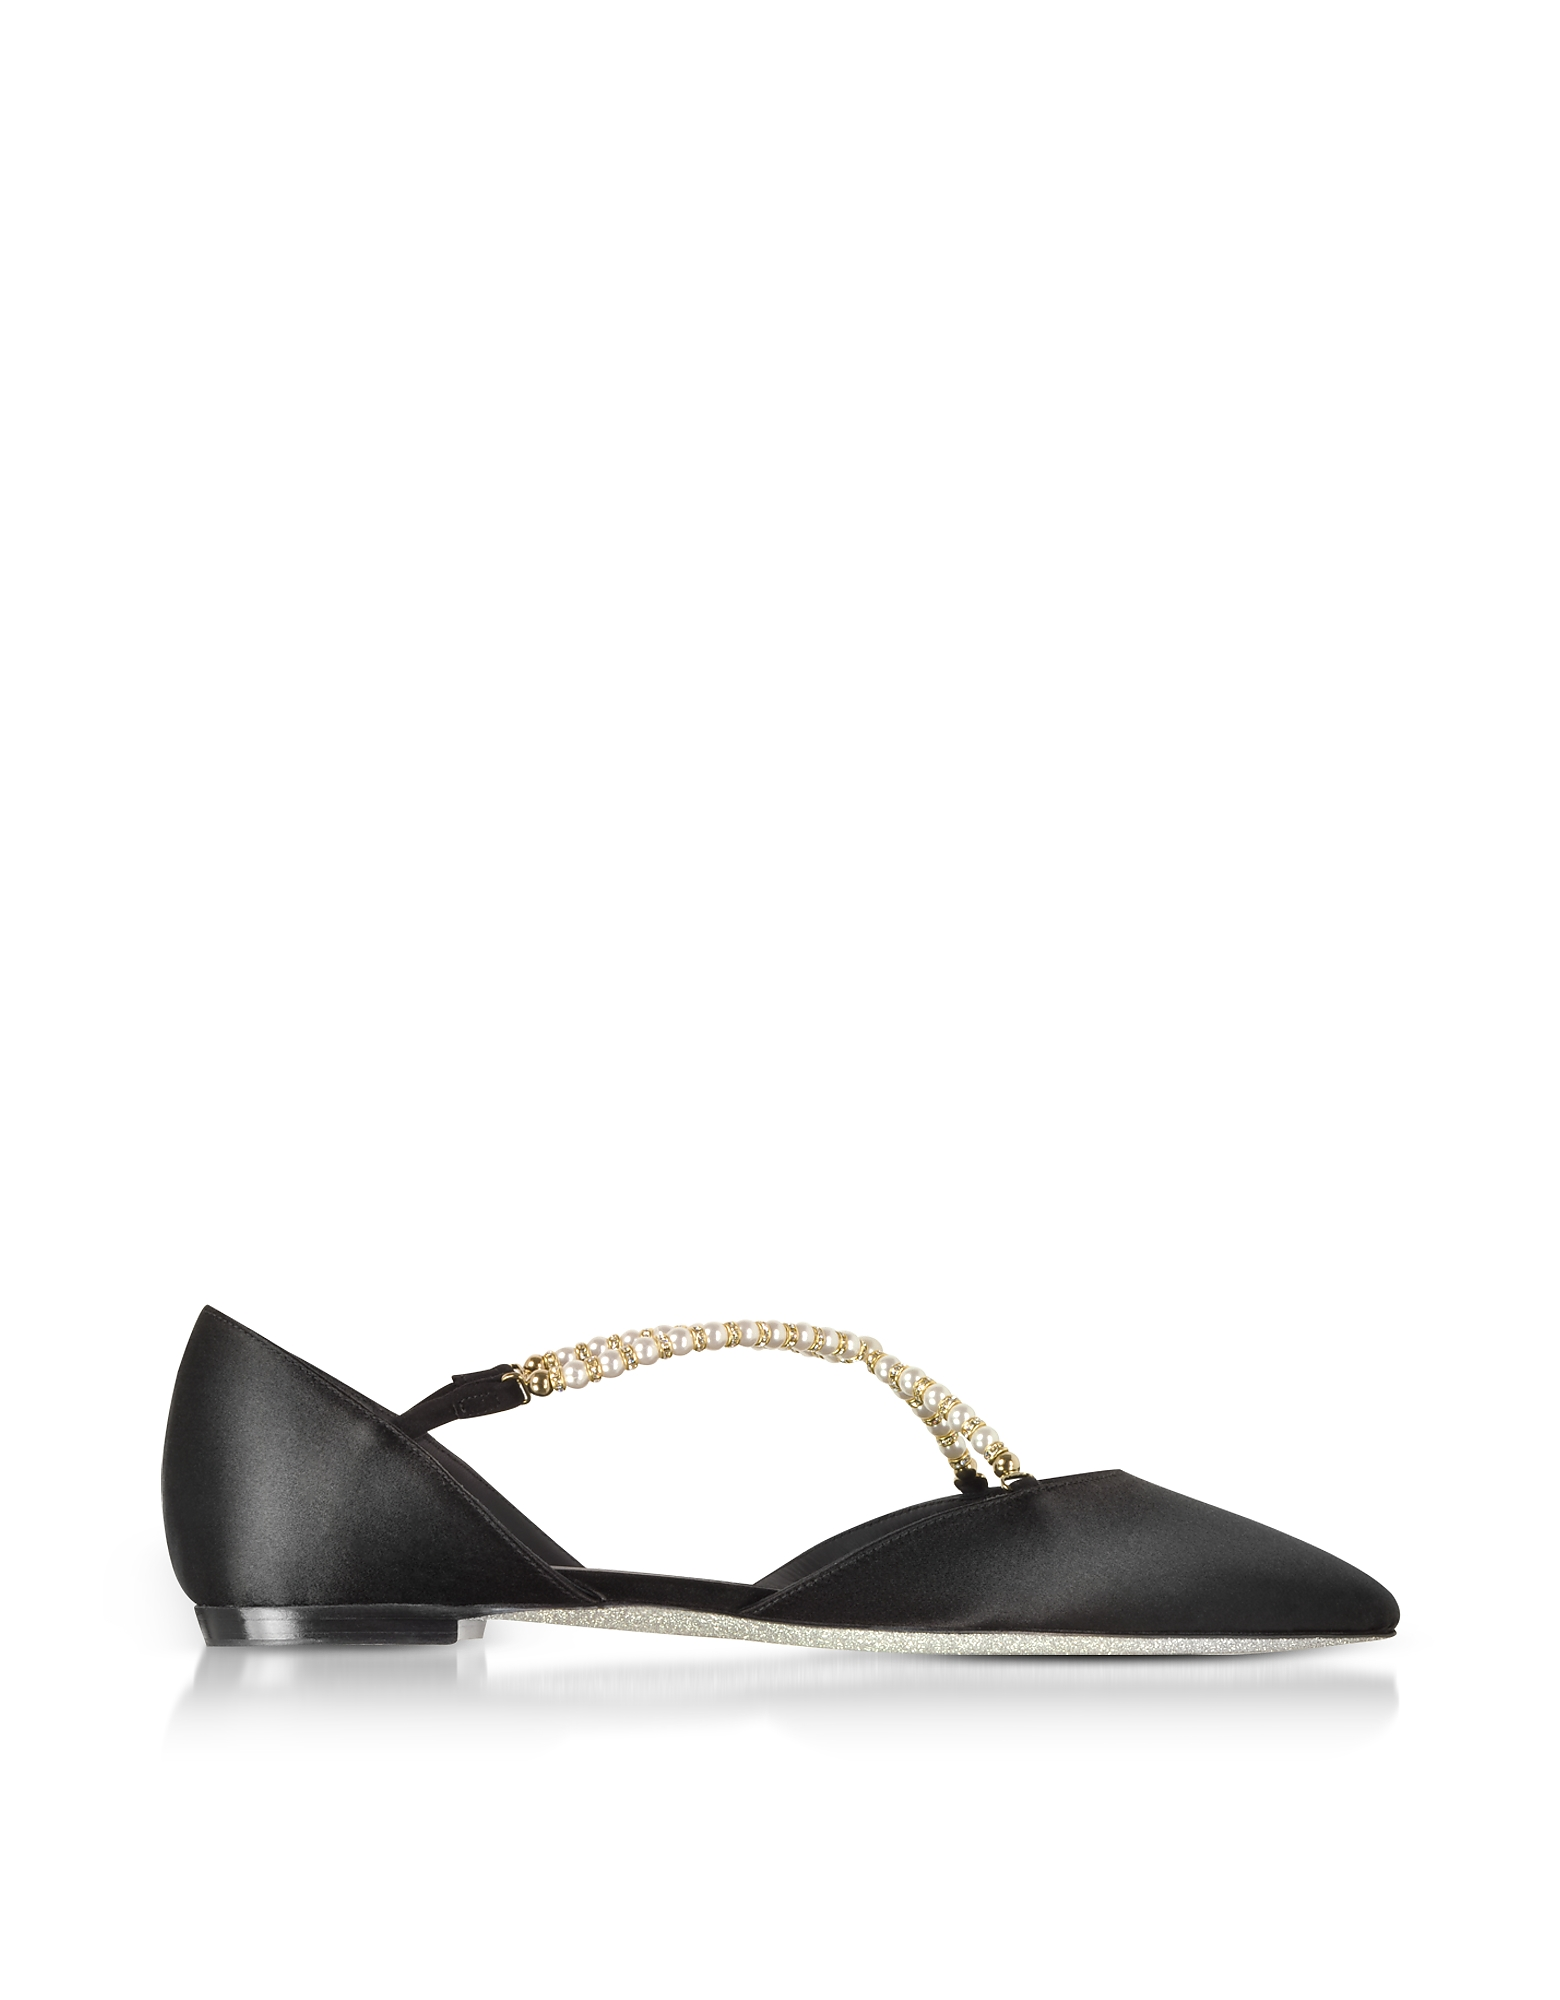 Rene Caovilla Shoes, Black Satin and Pearls Flat Ballerinas